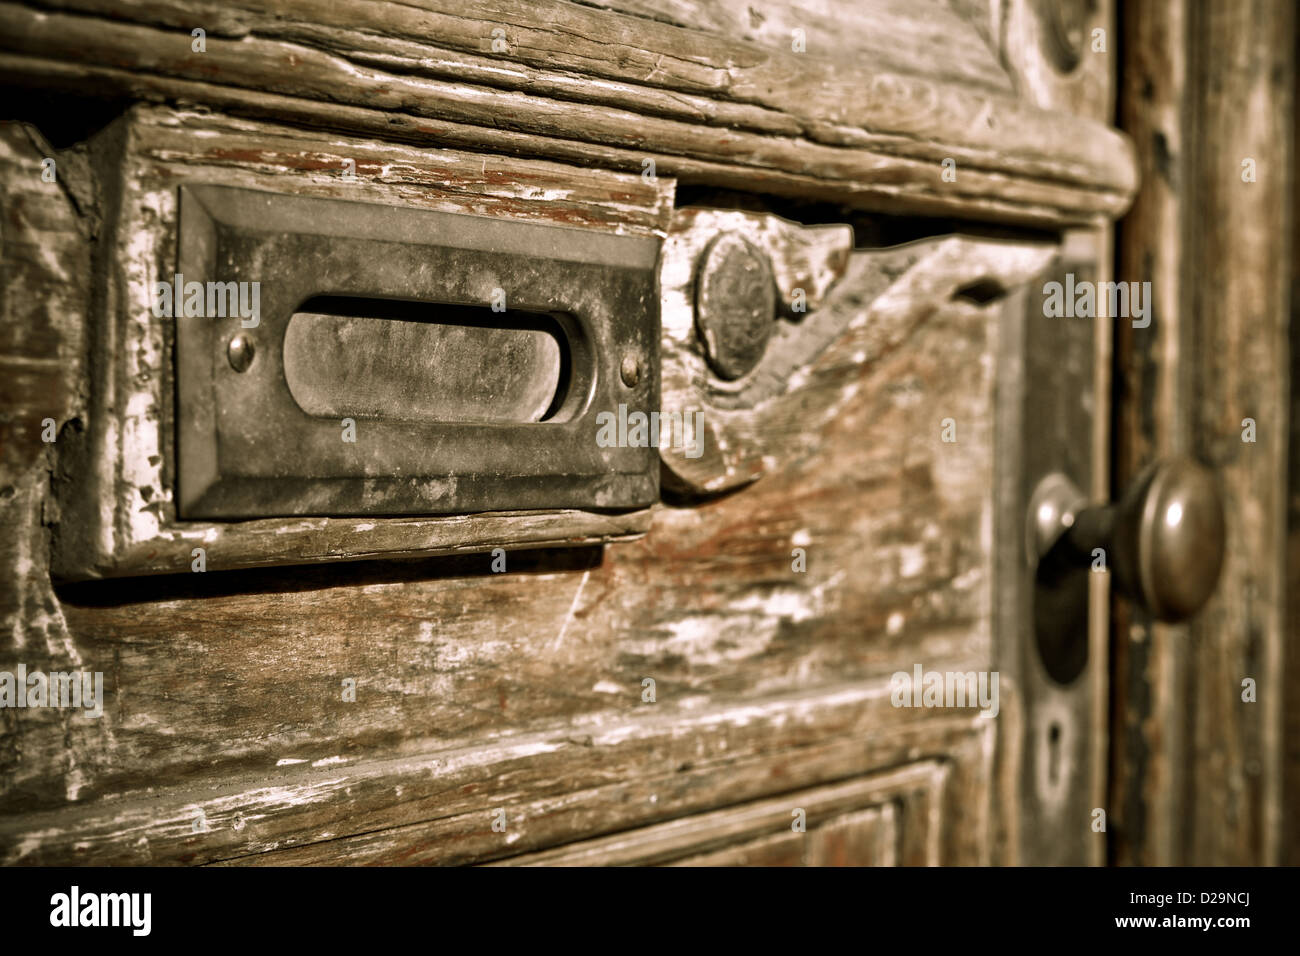 Mail box - Stock Image